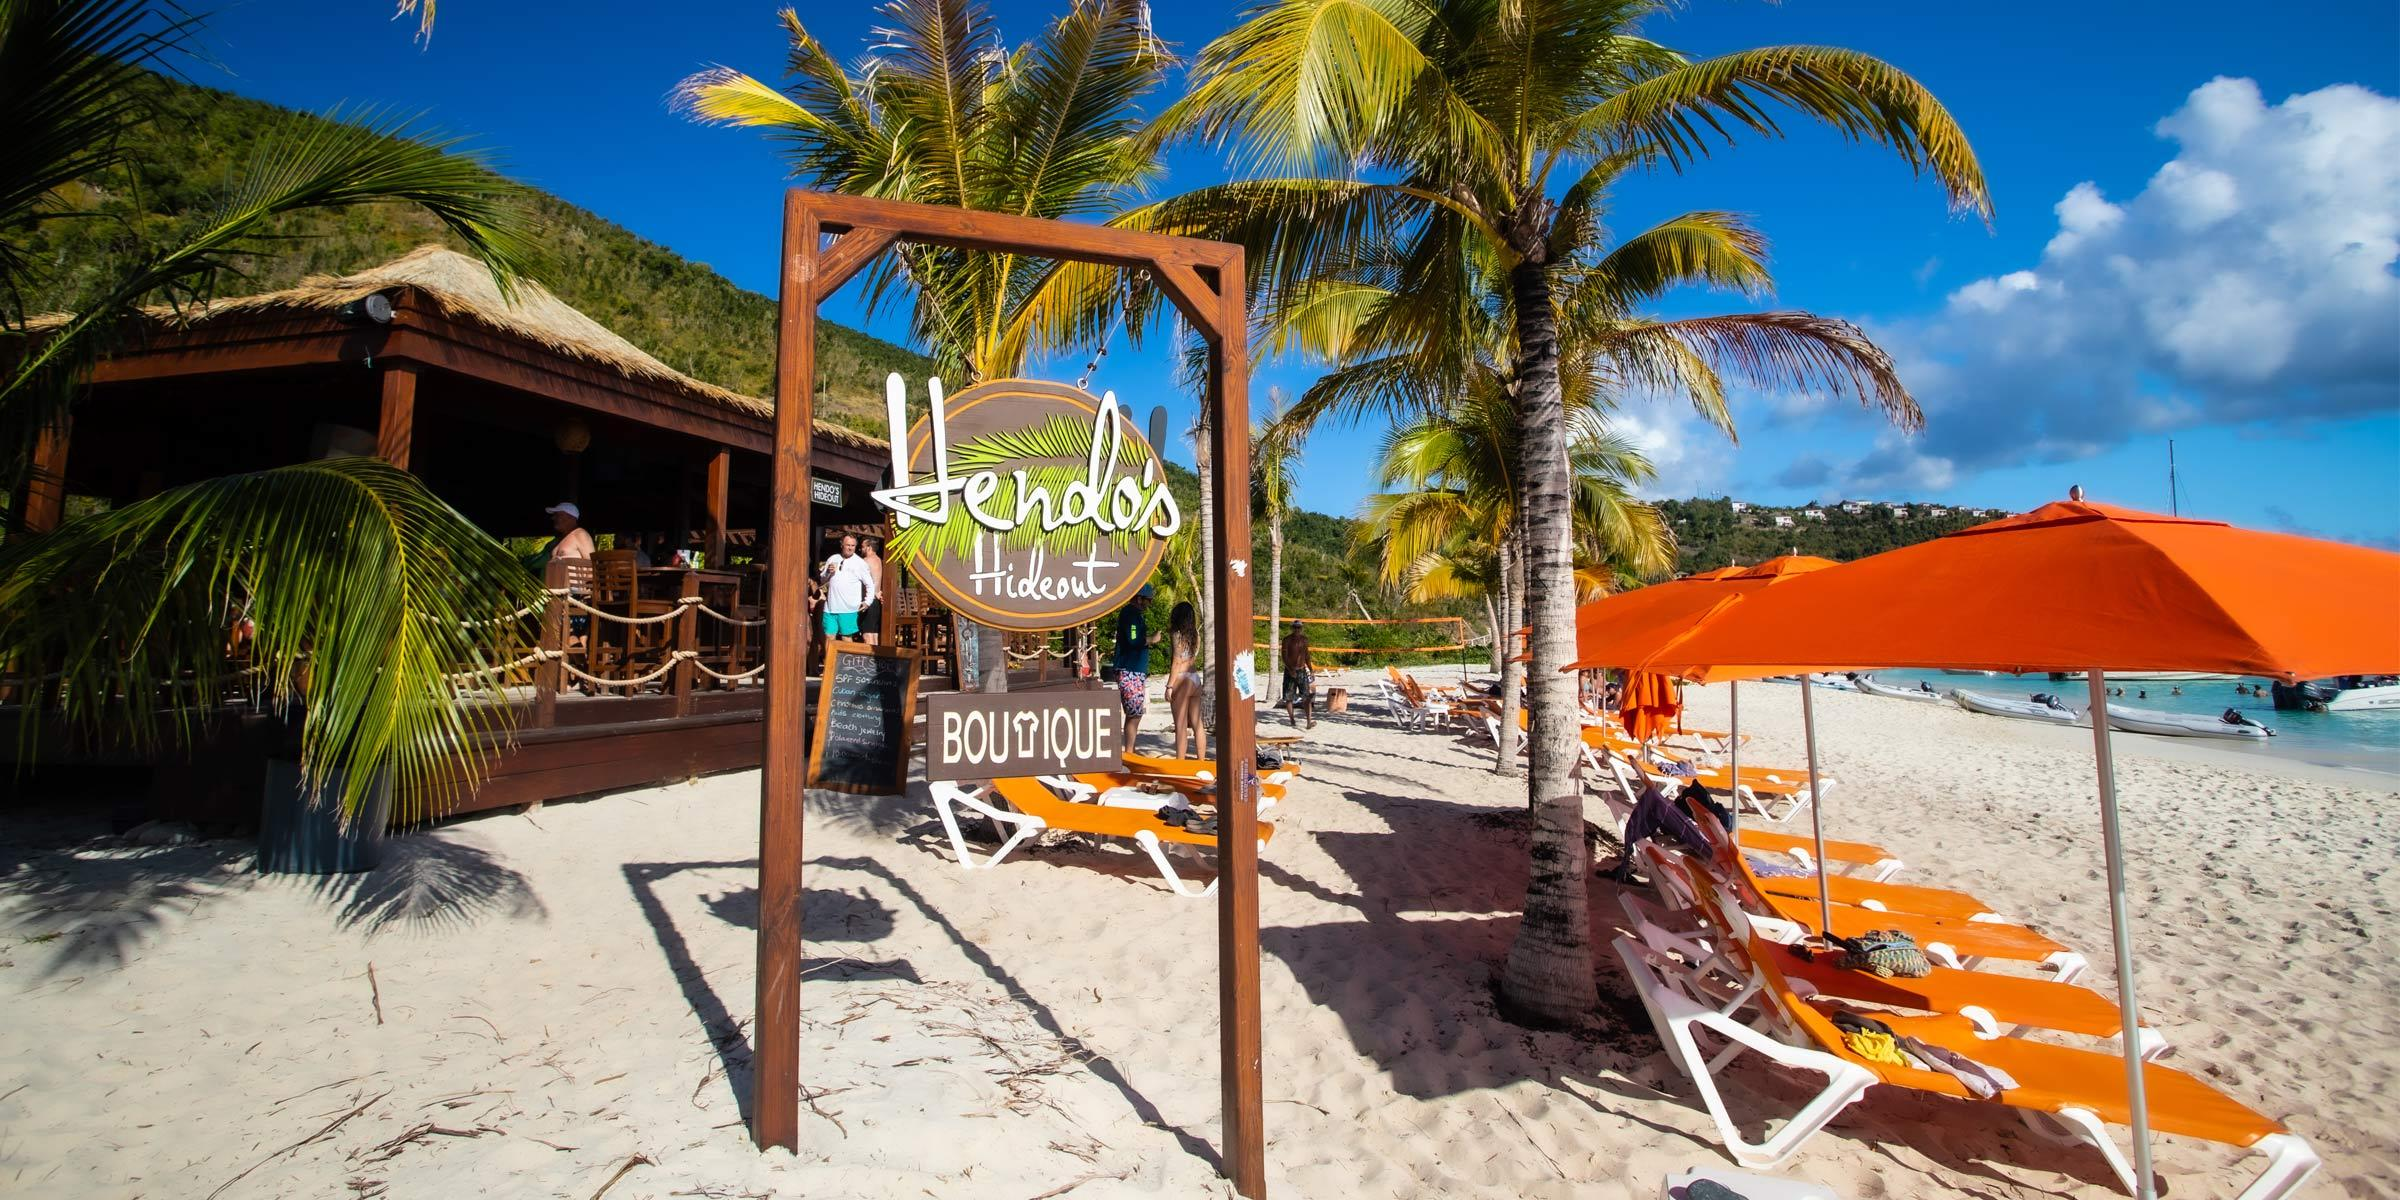 Hendo's Hideout at White Bay in the BVI